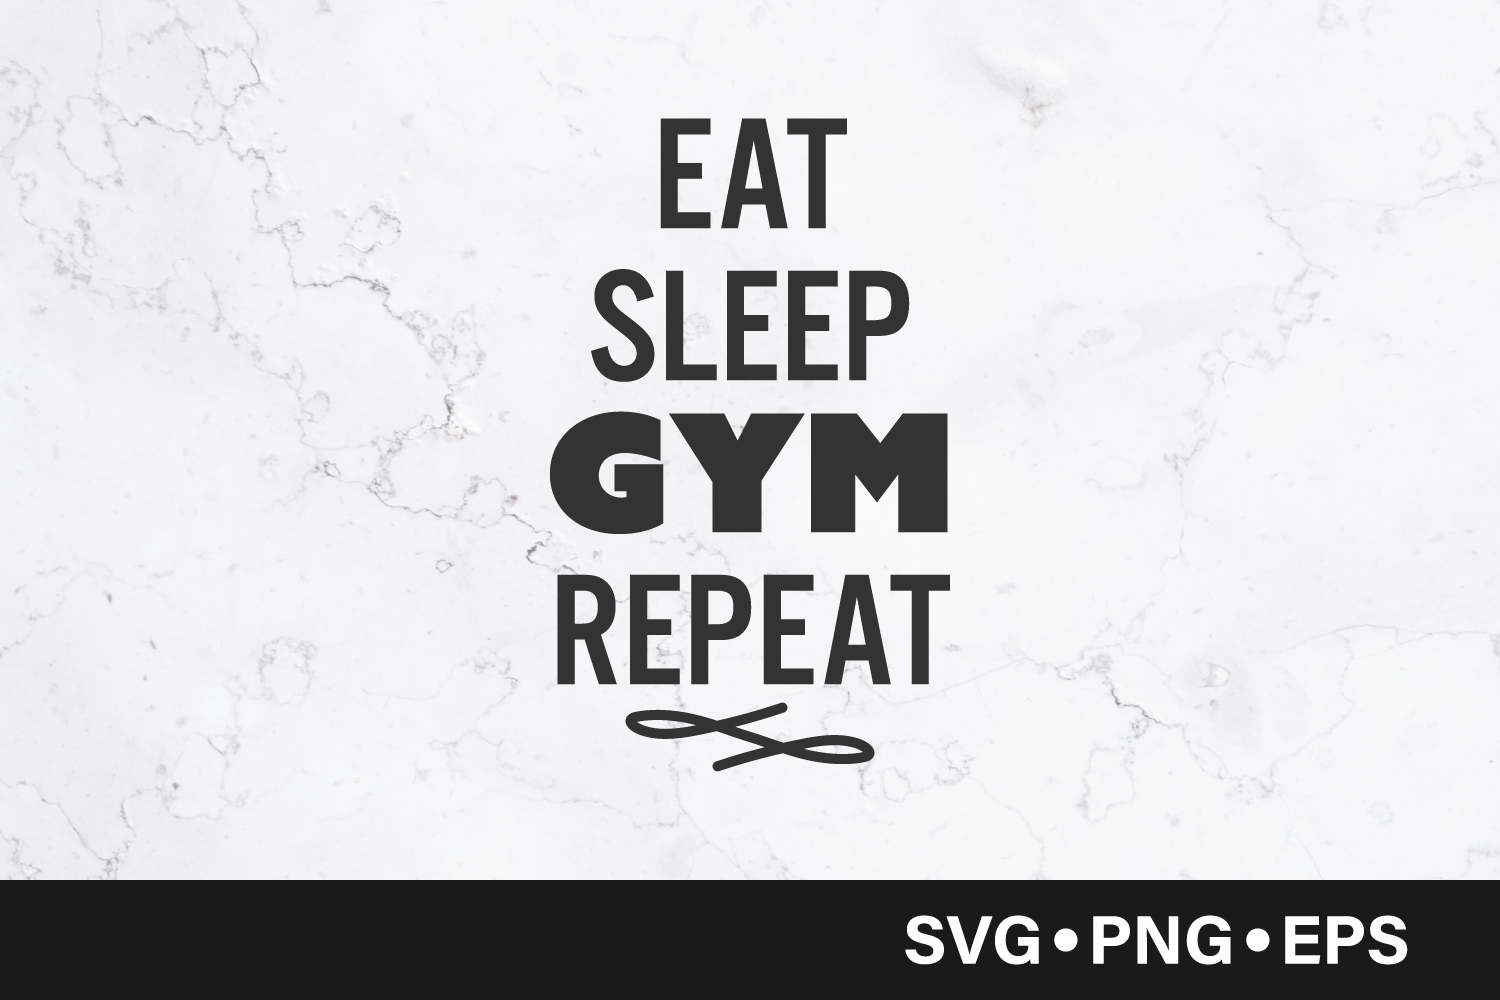 Download Free Eat Sleep Gym Repeat Quote Graphic By Vectorbundles Creative for Cricut Explore, Silhouette and other cutting machines.